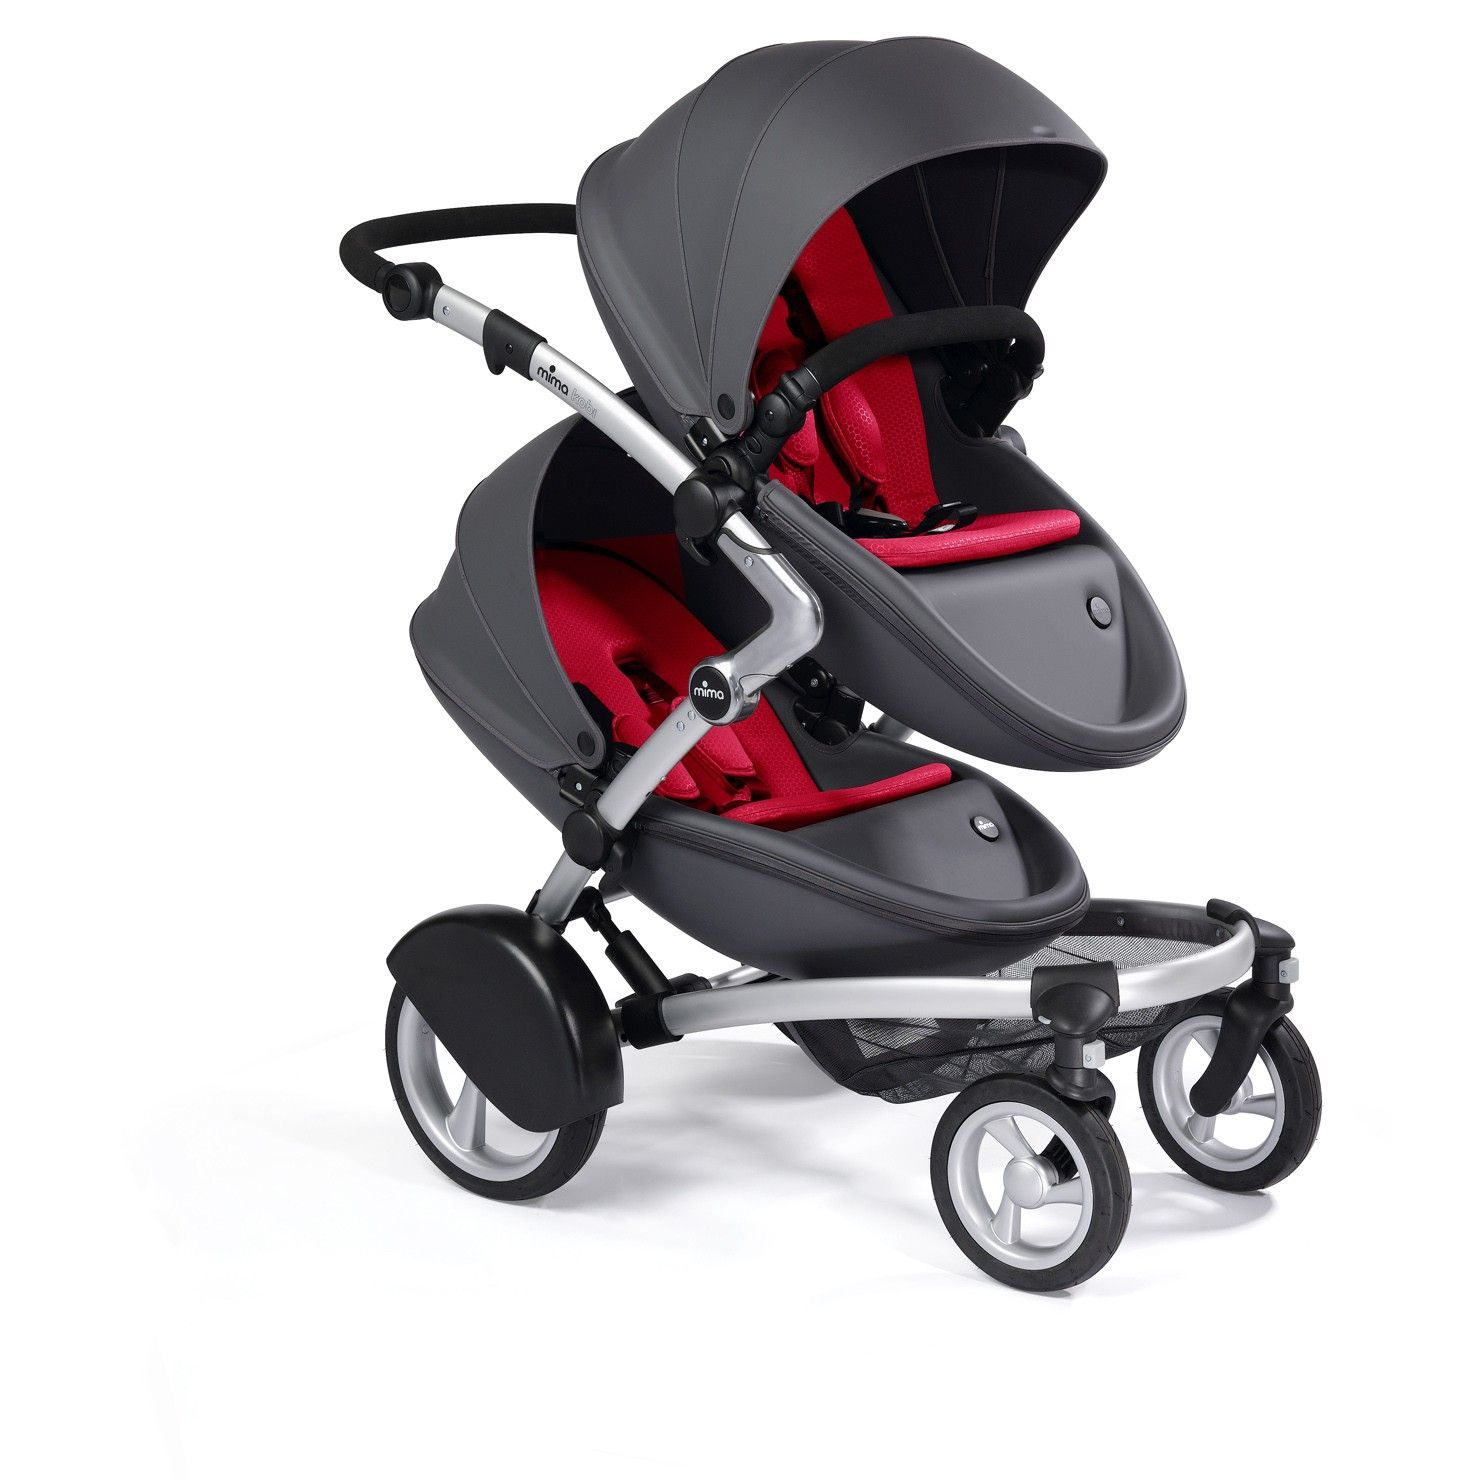 Mima Kobi Twin Seat Dark Grey including the second seat